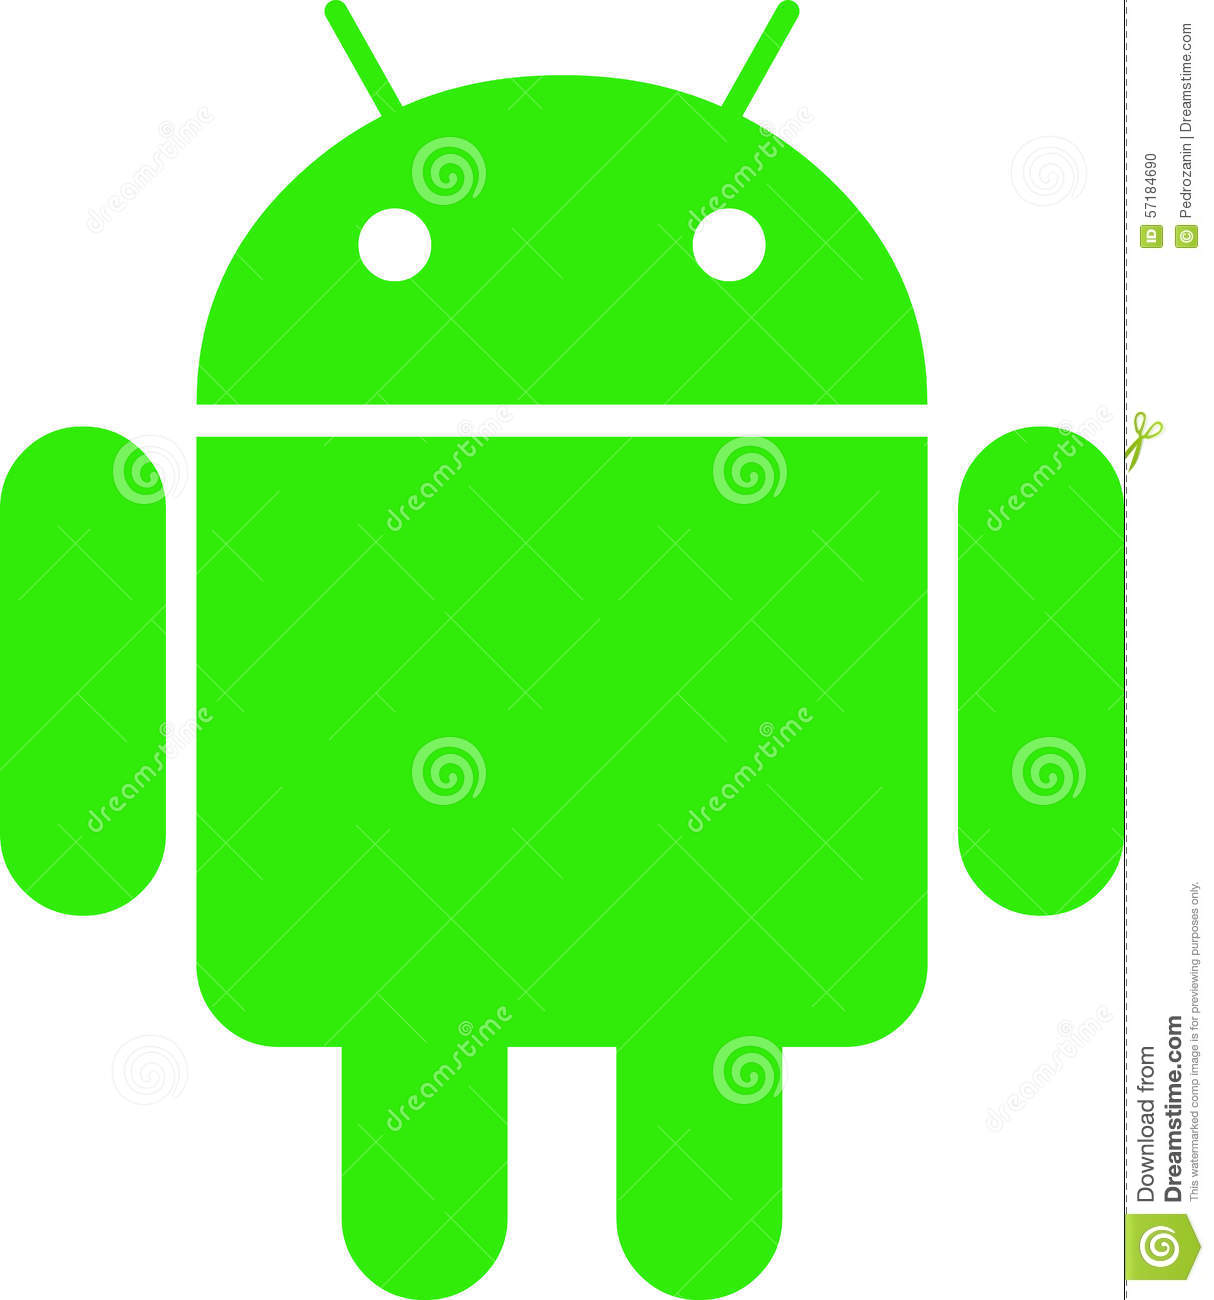 android logo editorial image illustration of available 57184690